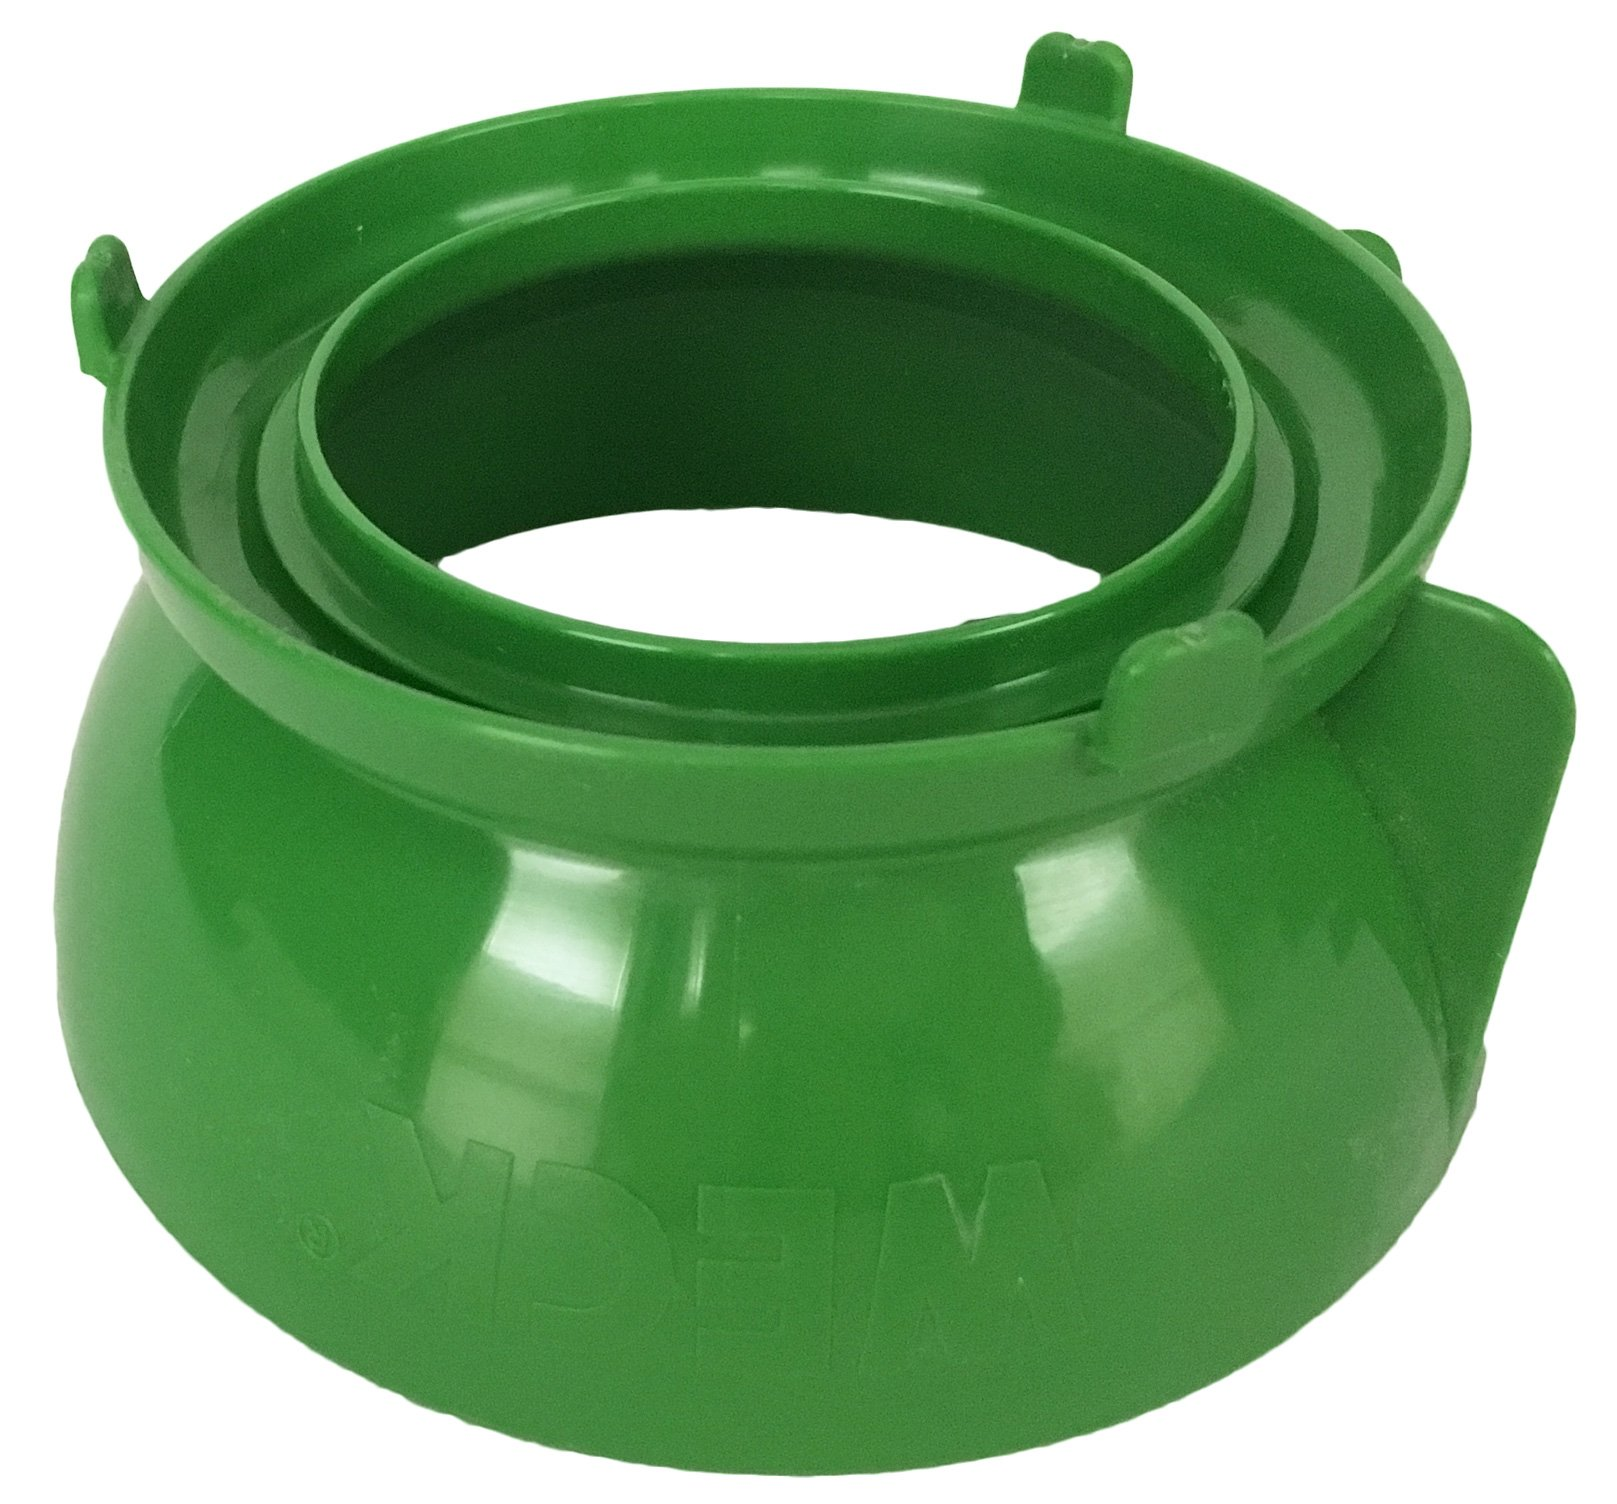 Weck Funnel for Wide Mouth Jars by Weck (Image #2)